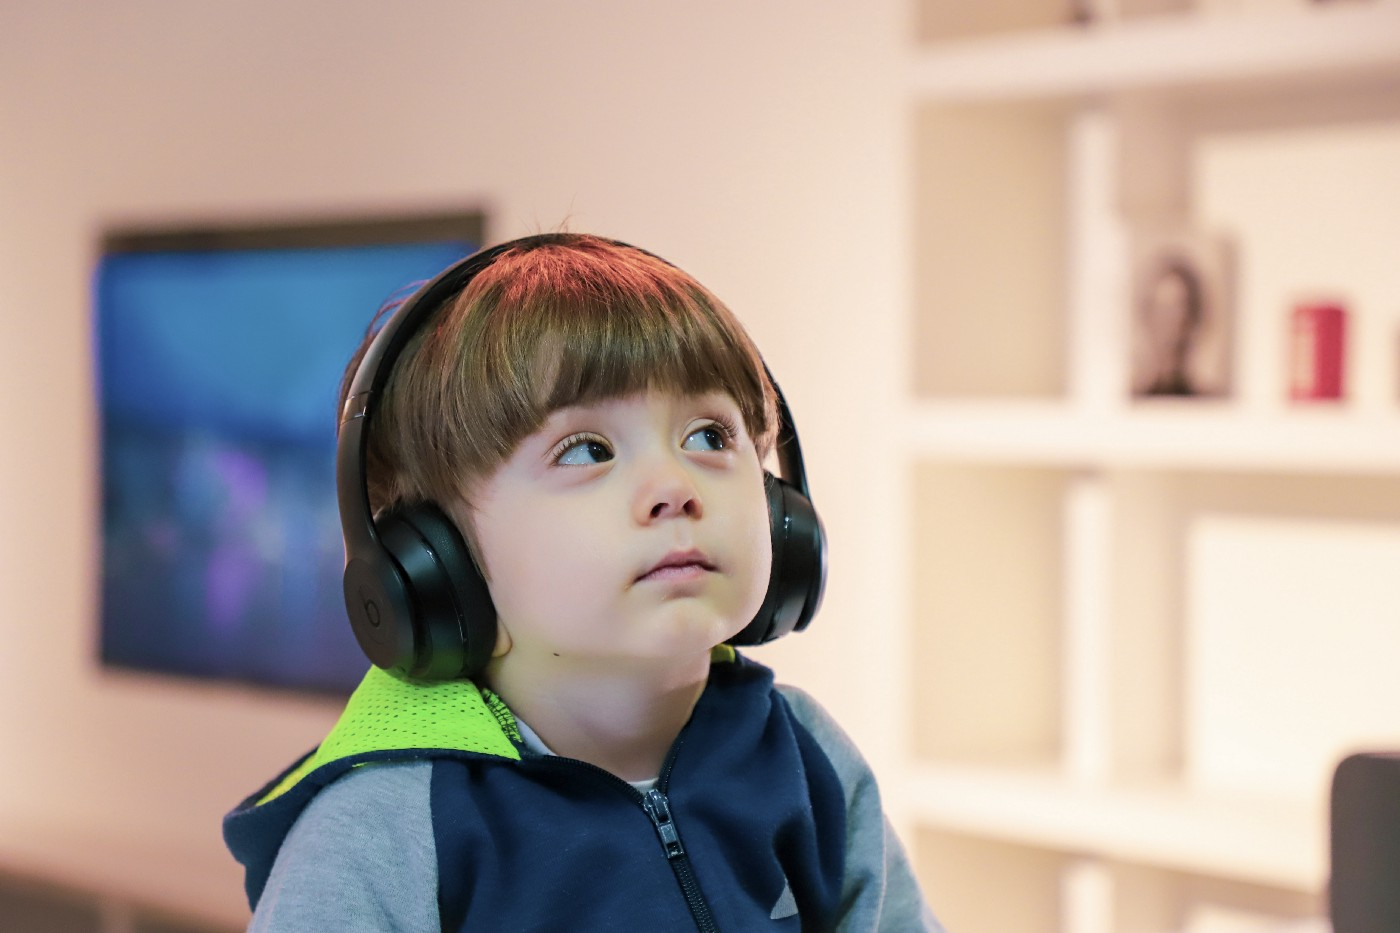 Young child wearing oversized bose headphones